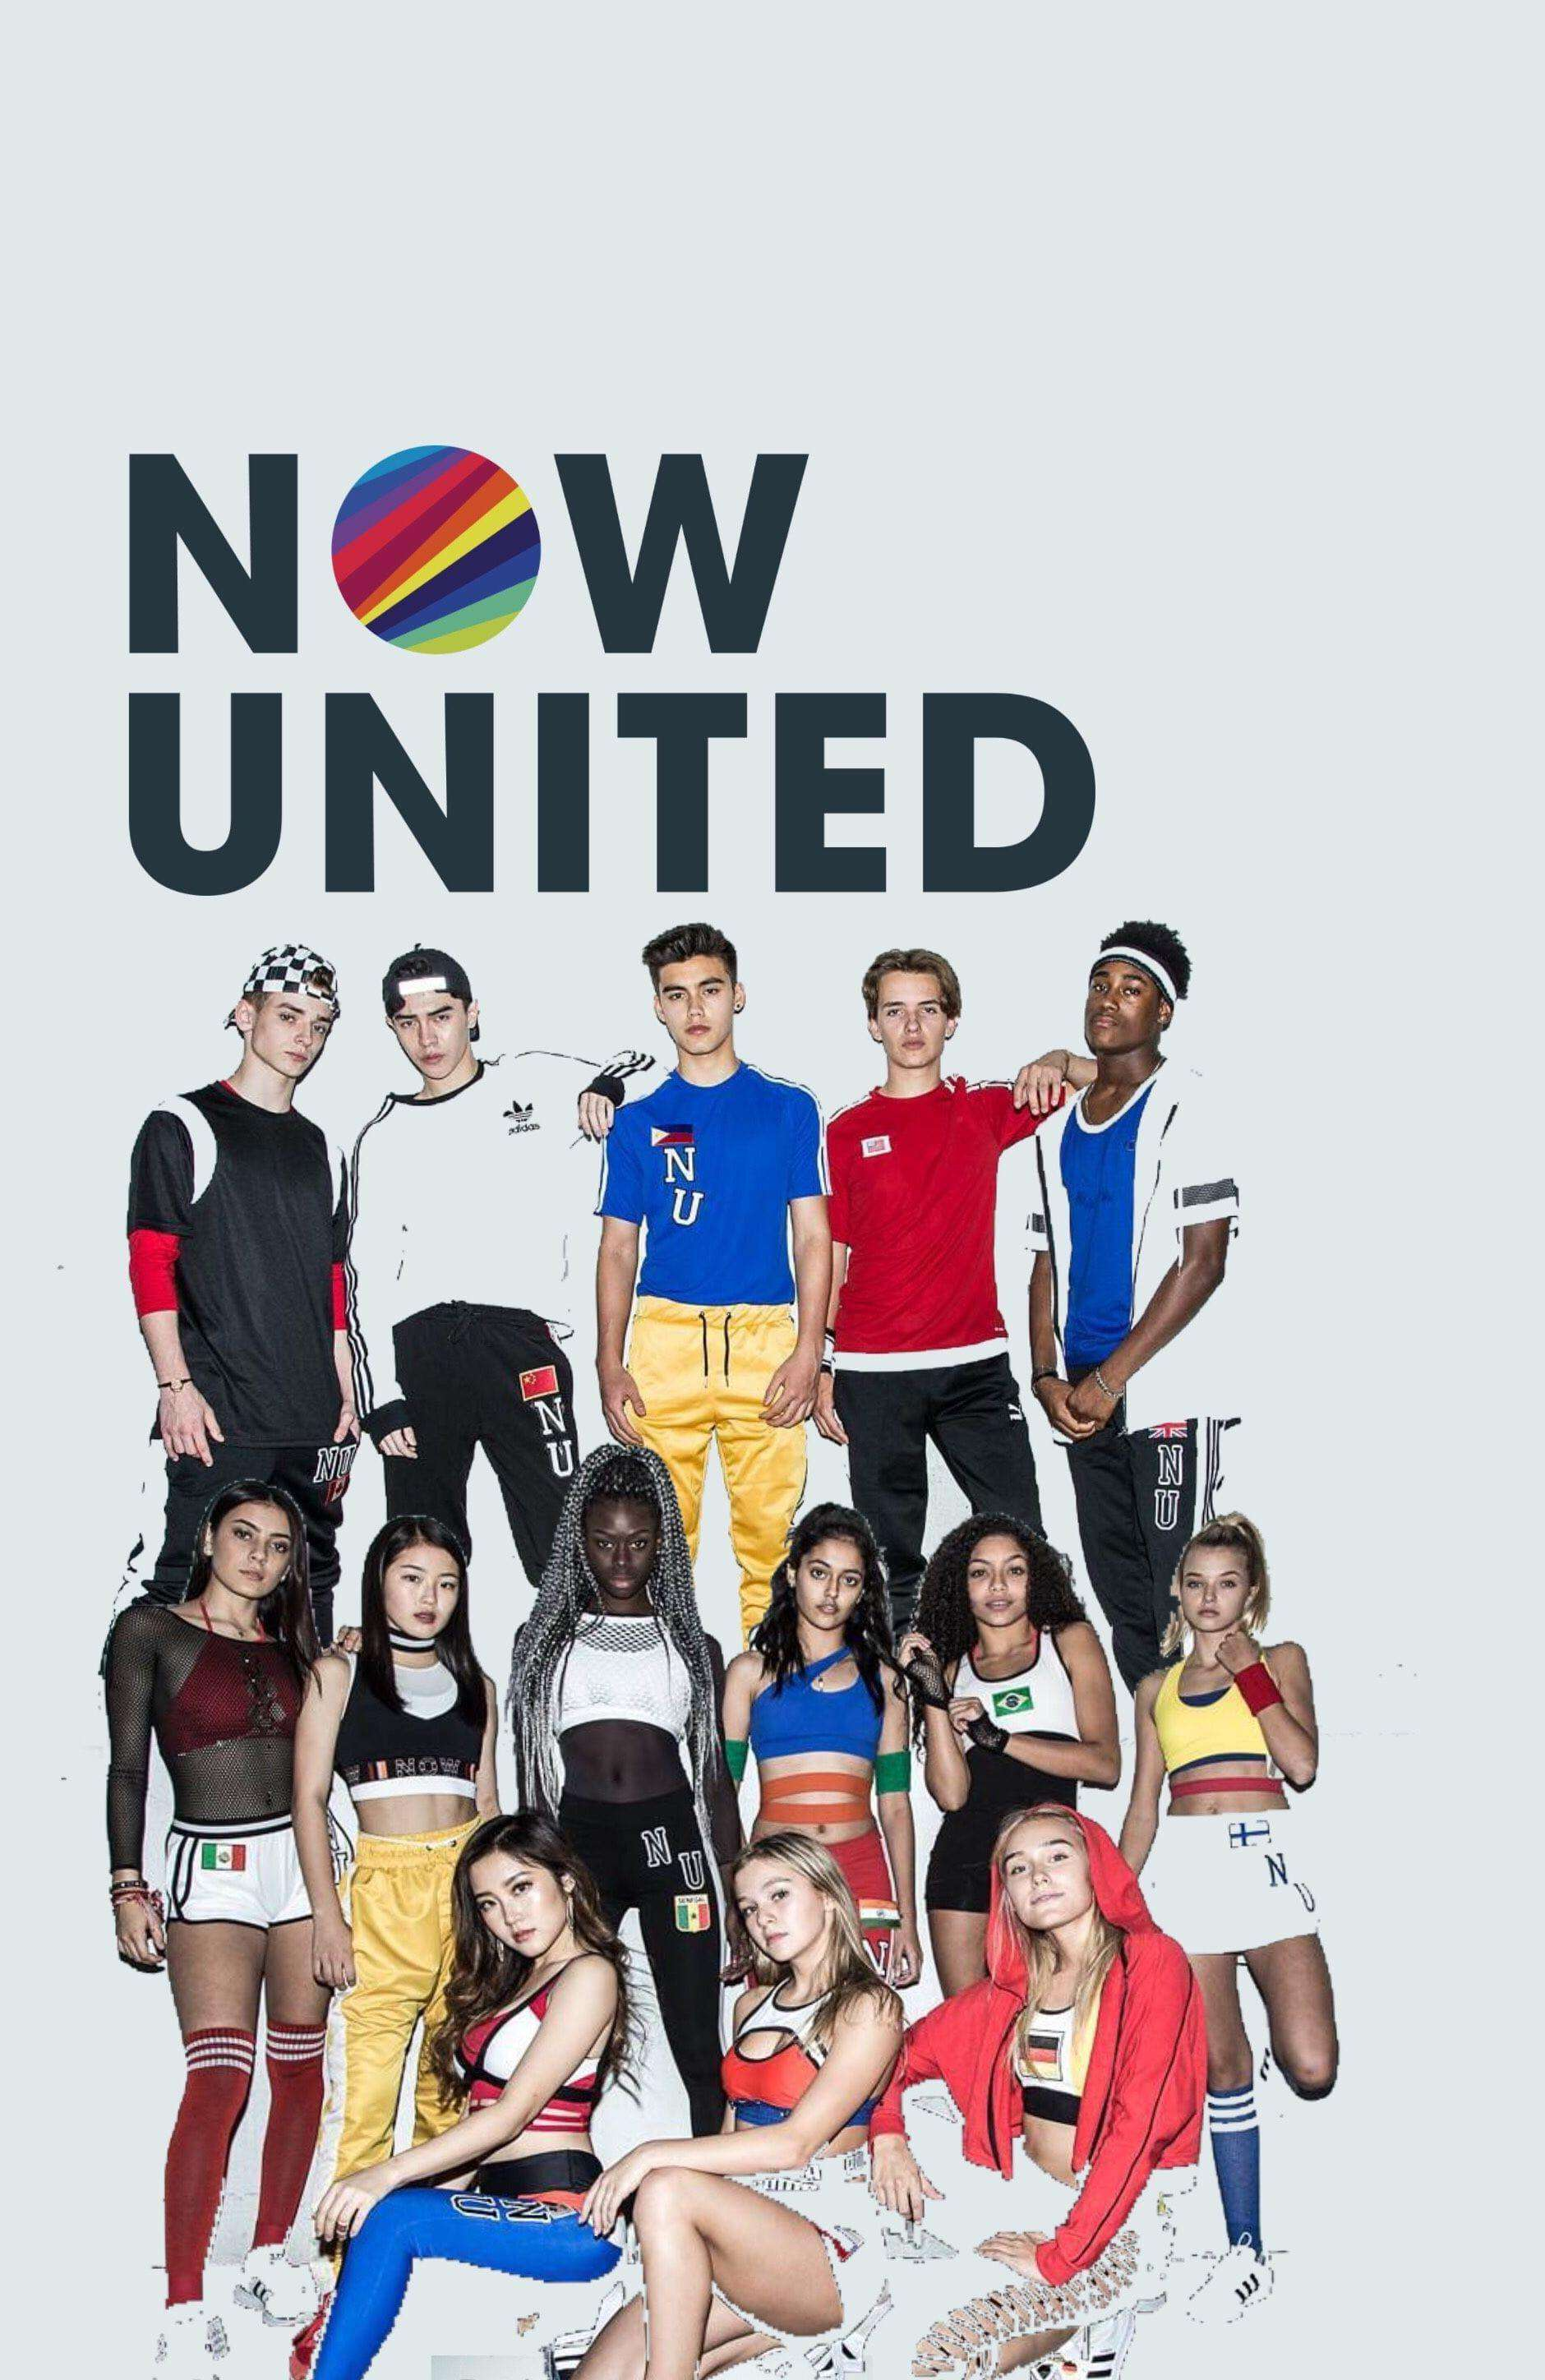 Now United: Dreams Come True Movie Watch Online | Find Where to Stream Full  Movie in HD @ 24reel